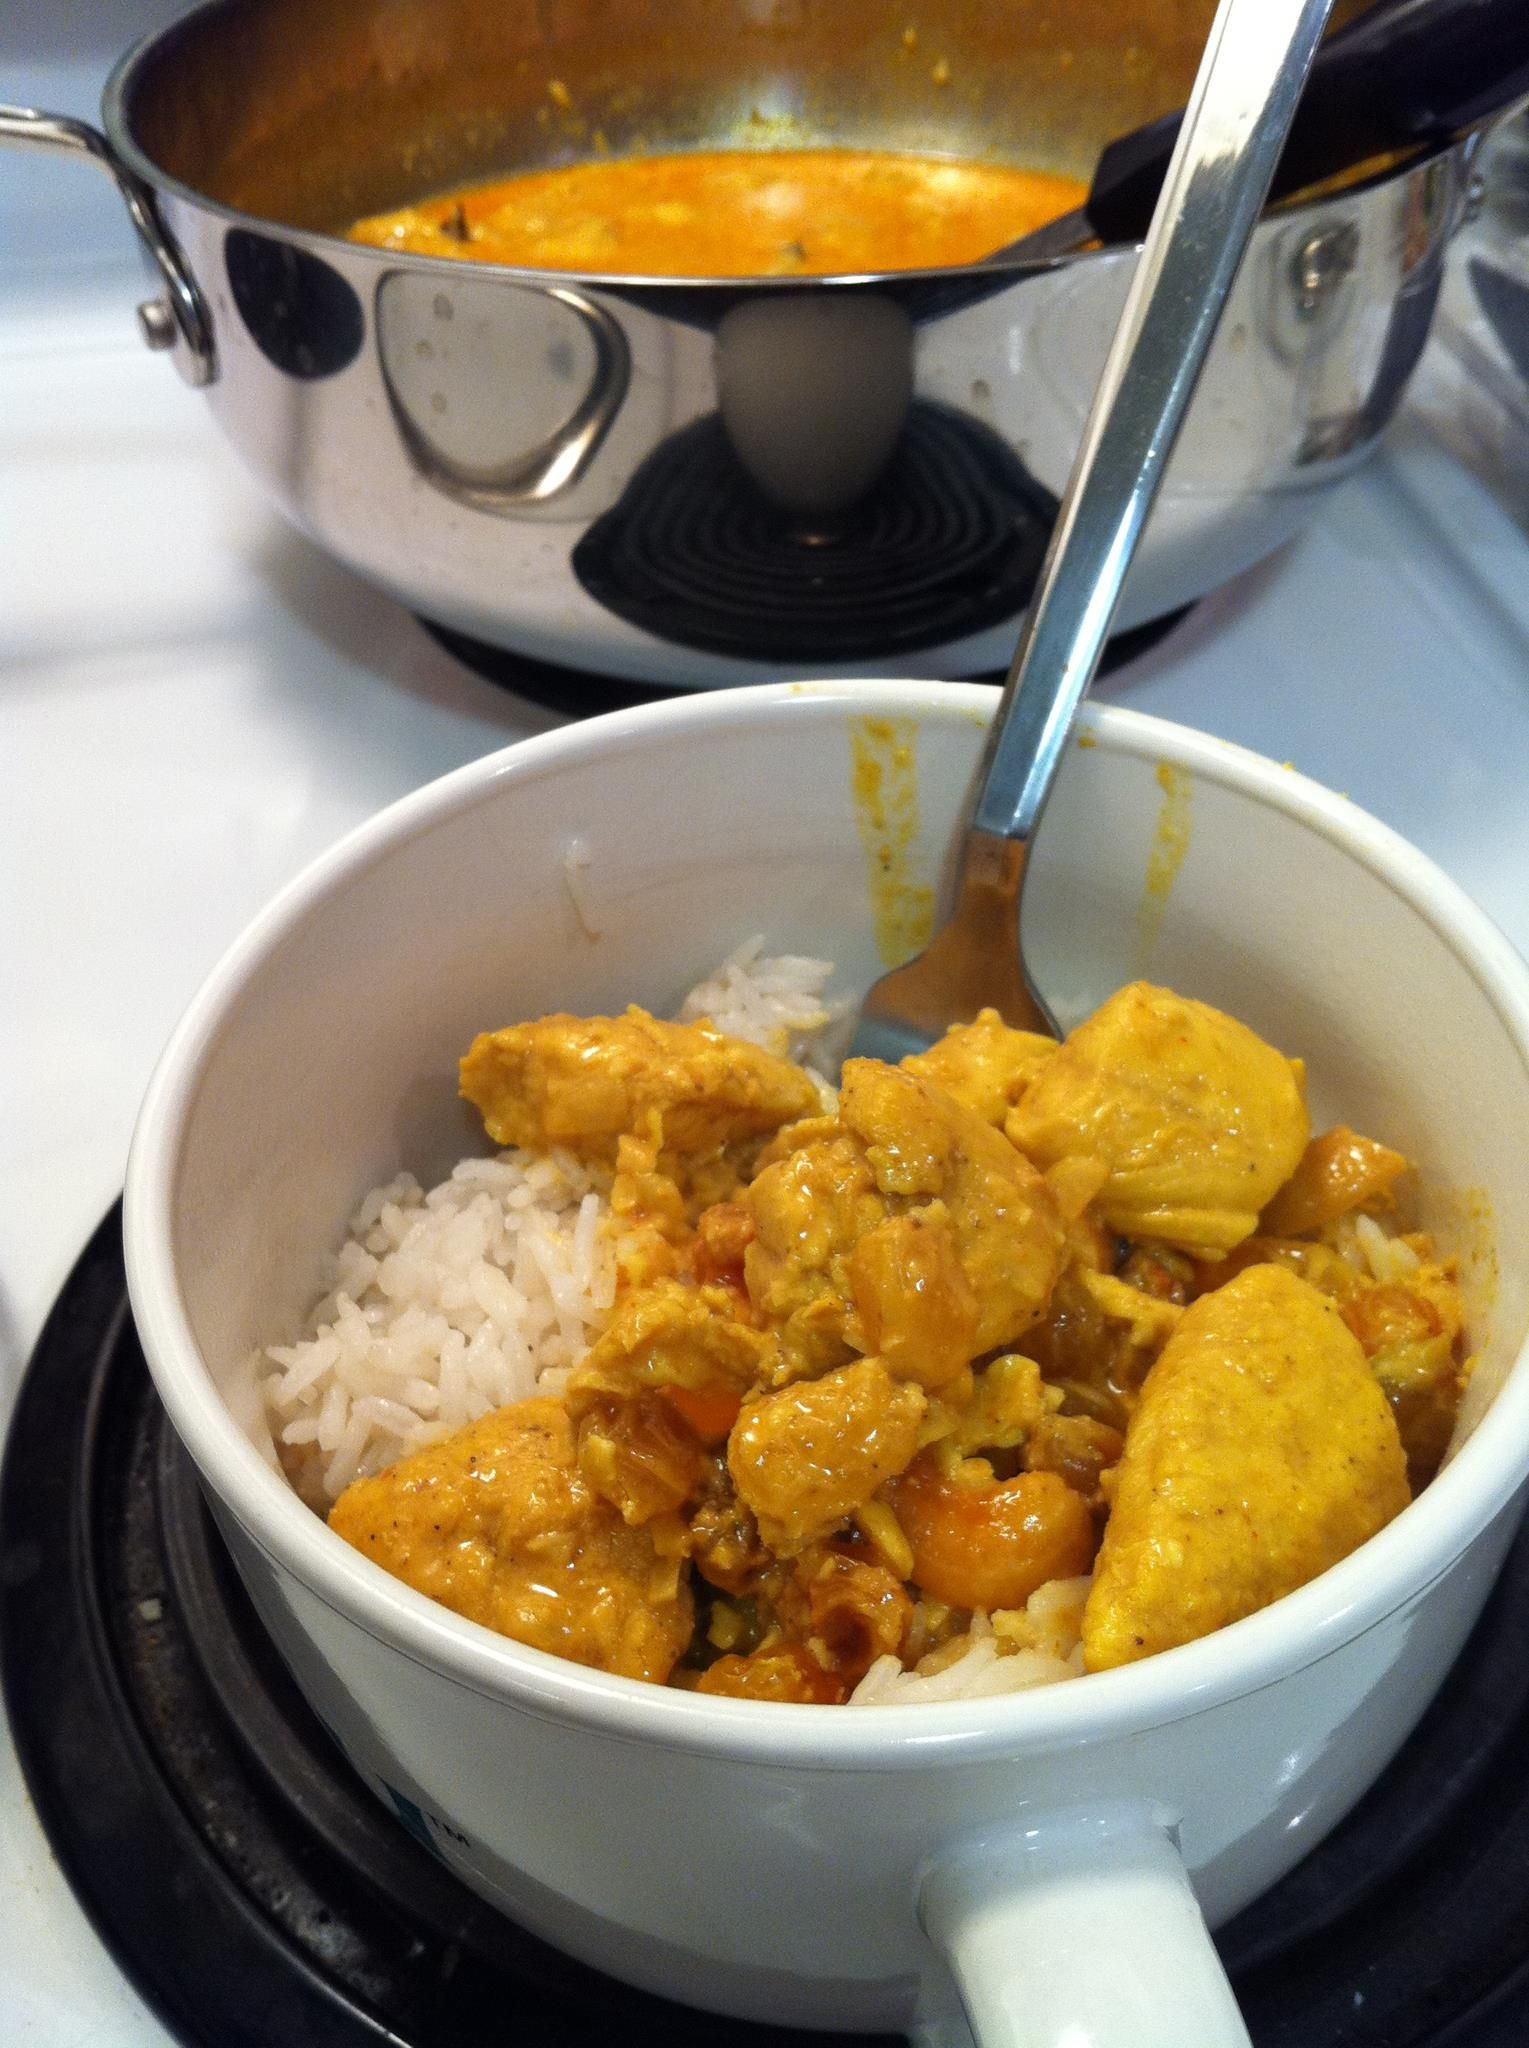 Indian chicken korma cooking pinterest indian chicken korma food i ve made find this pin and more on cooking by kfurry23 indian chicken korma forumfinder Images